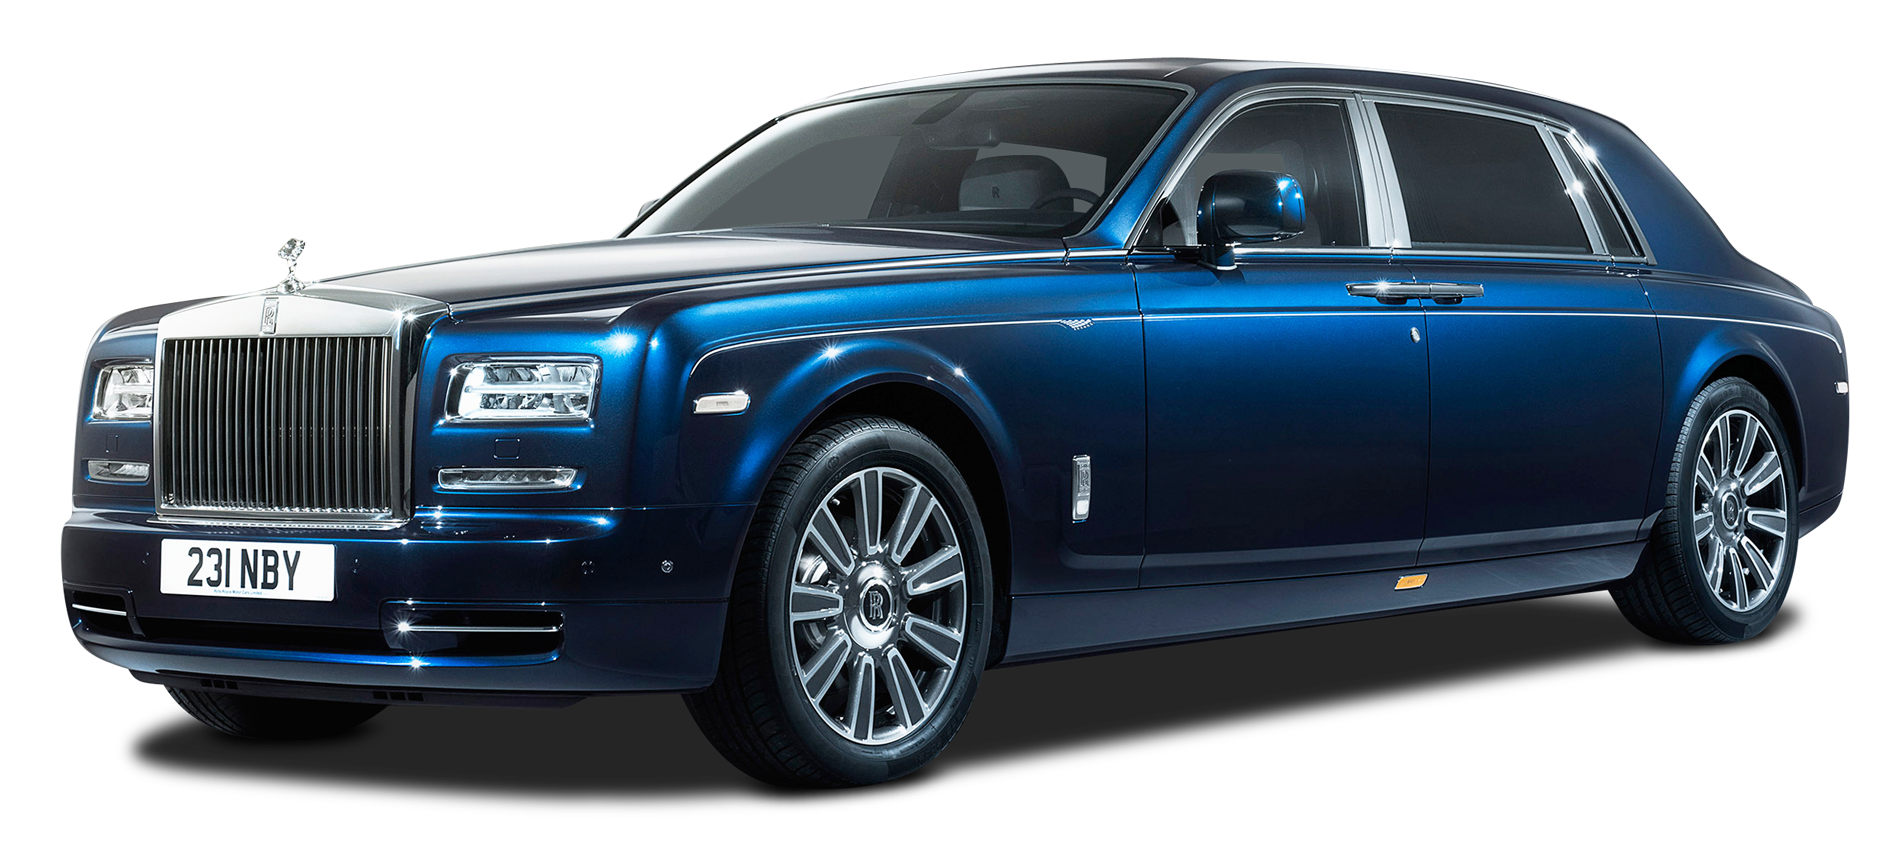 Прокат Rolls Royce Phantom